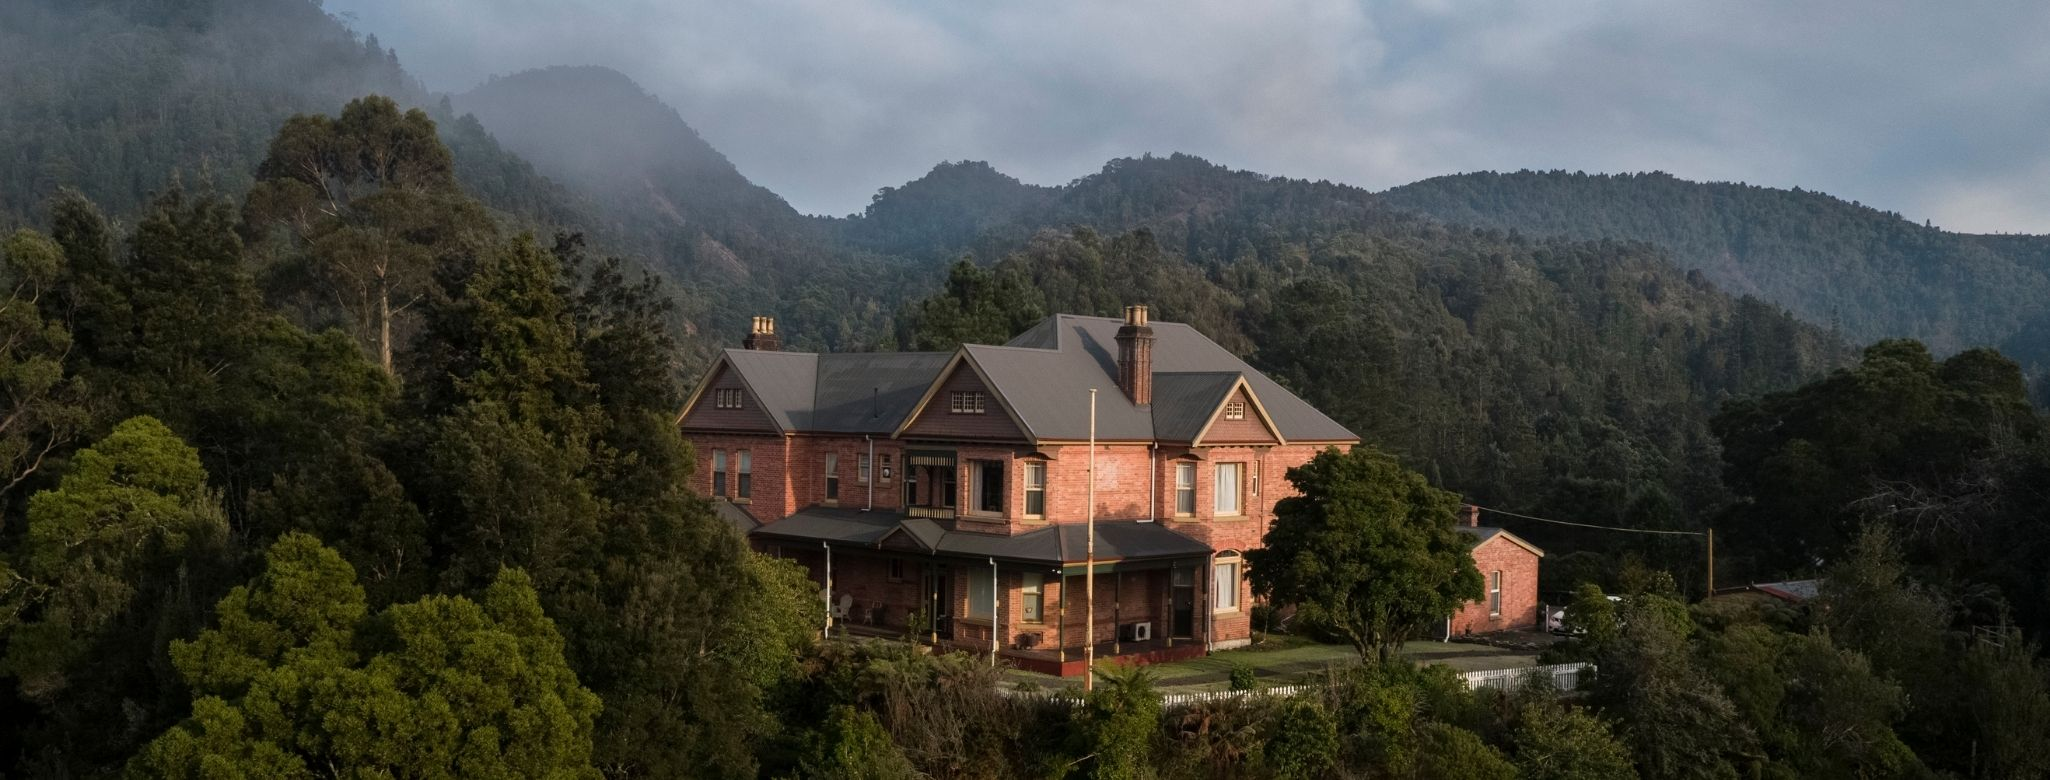 Queenstown's Penghana Bed And Breakfast Is One Of The Most Historic And Significant Mansions In Tasmania